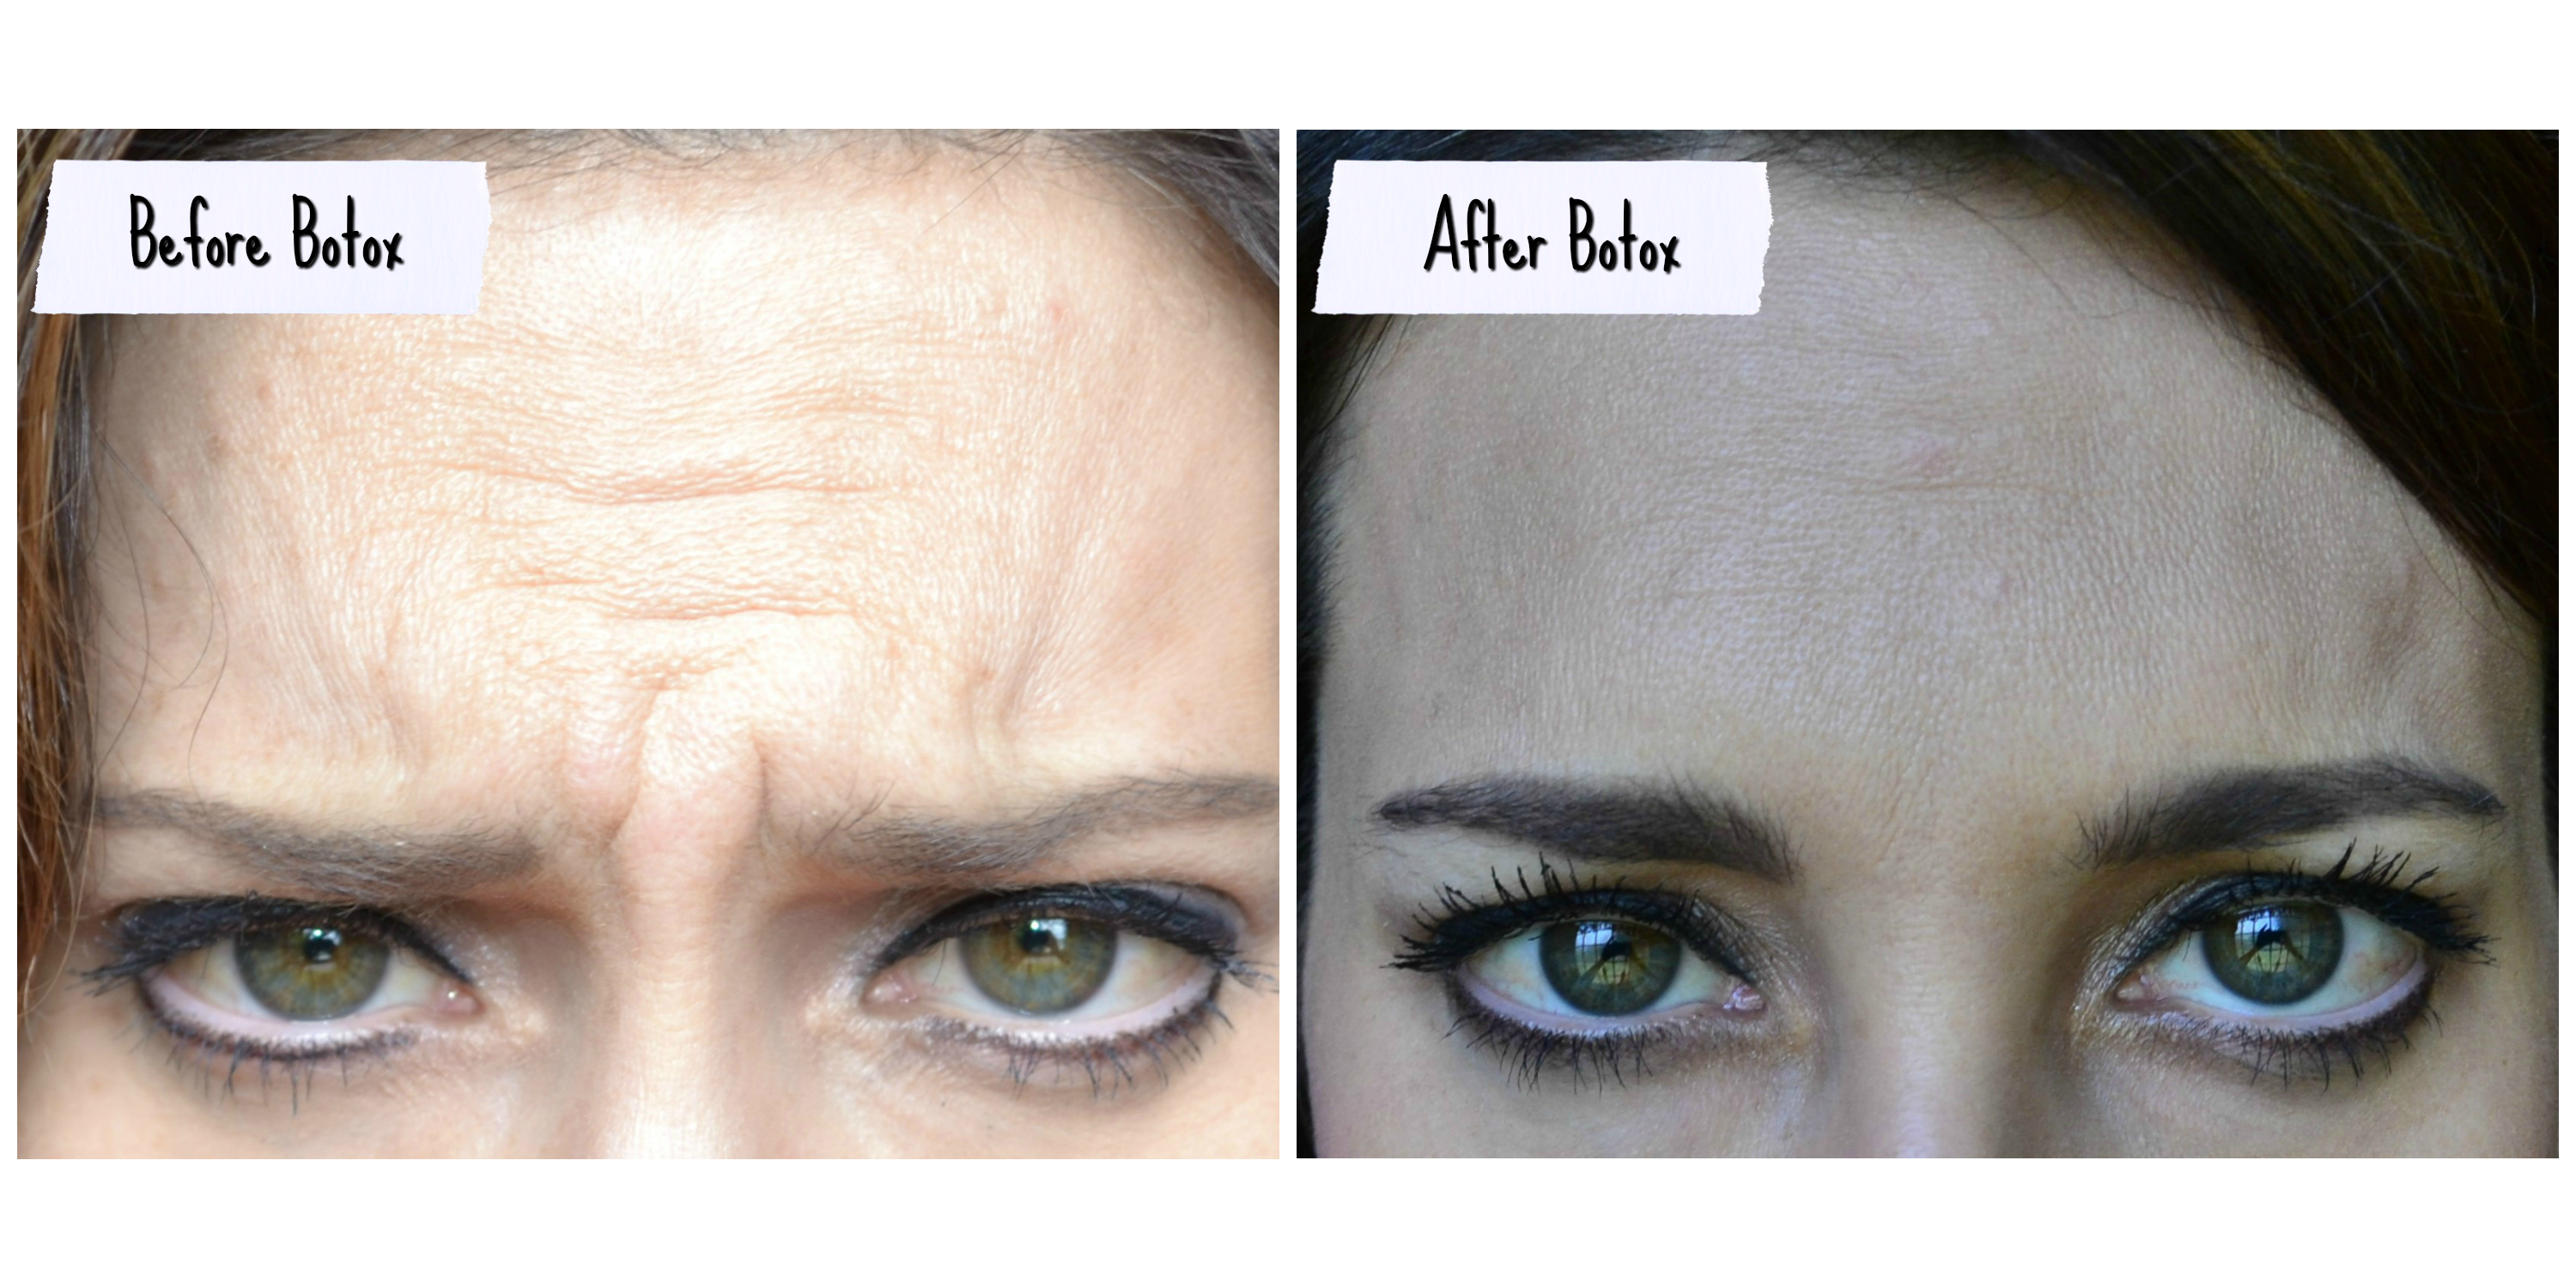 before-botox-injections